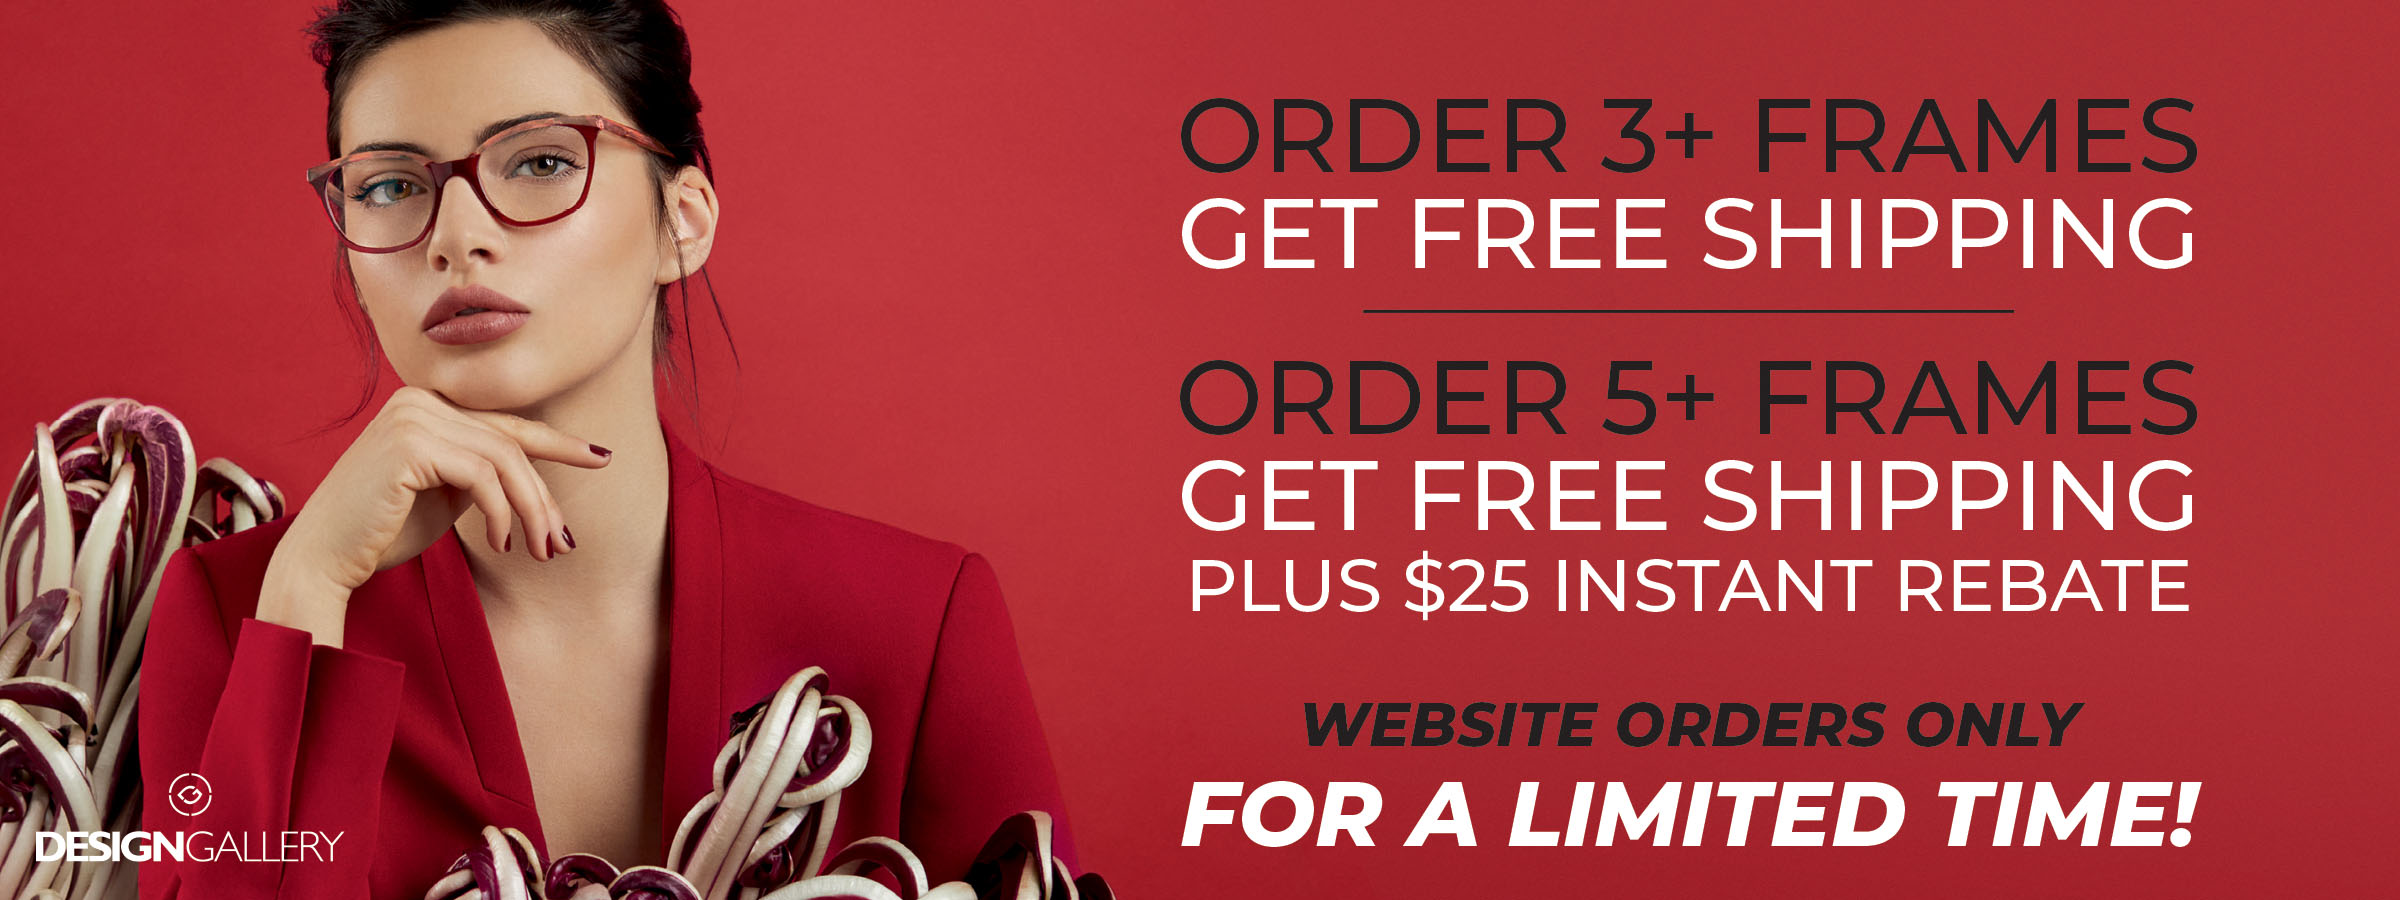 Order 5 frames, get free shipping plus $25 instant rebate & Website orders only FOR A LIMITED TIME!